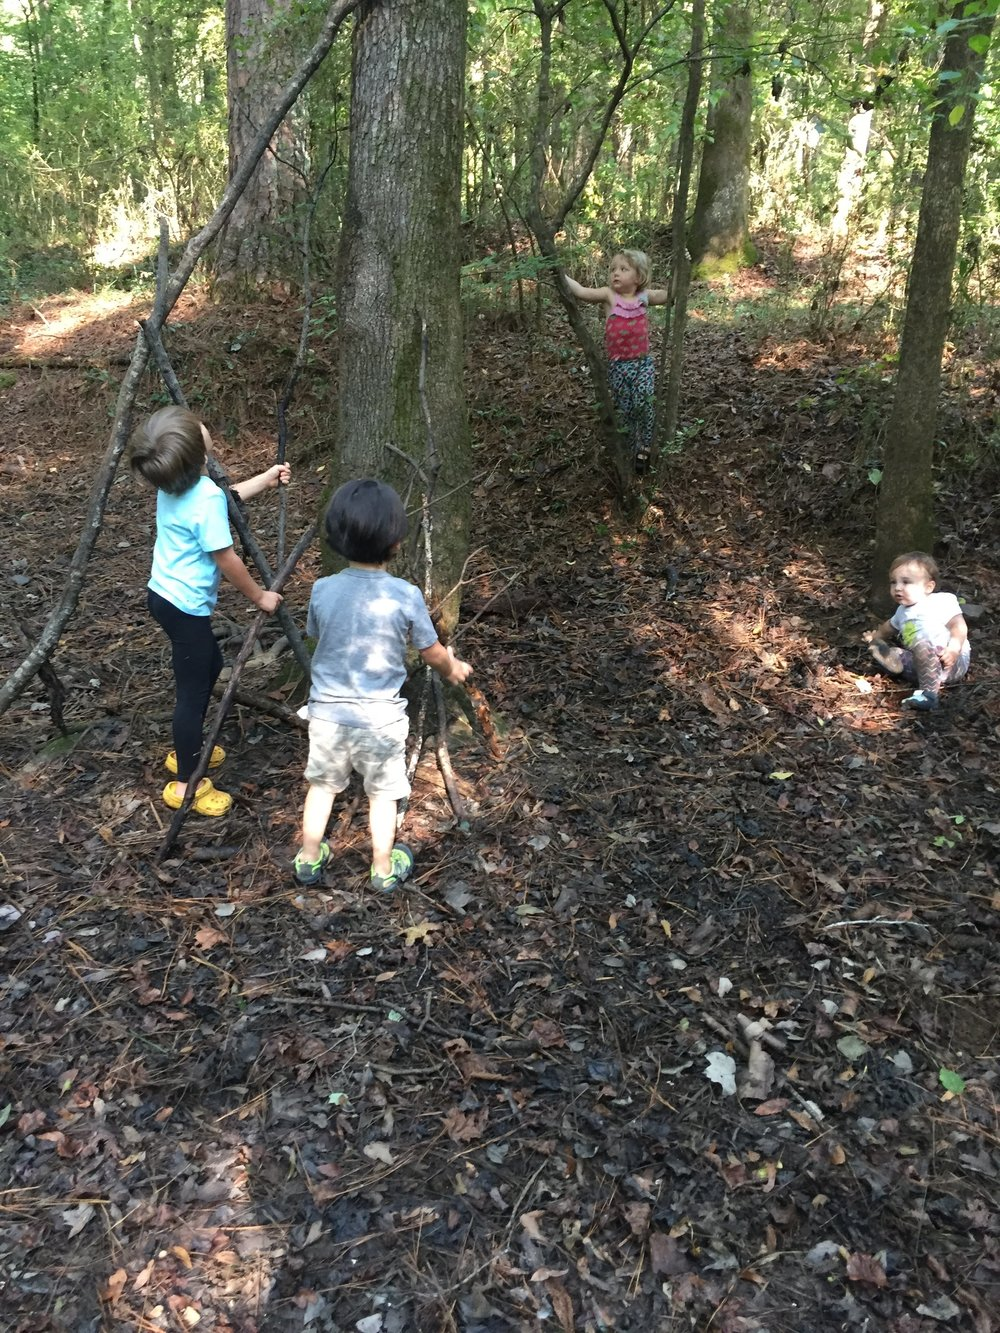 Children at AFK Playgroup have the space and the community to work on their own ideas that require planning, teamwork, and problem-solving, like this fort.